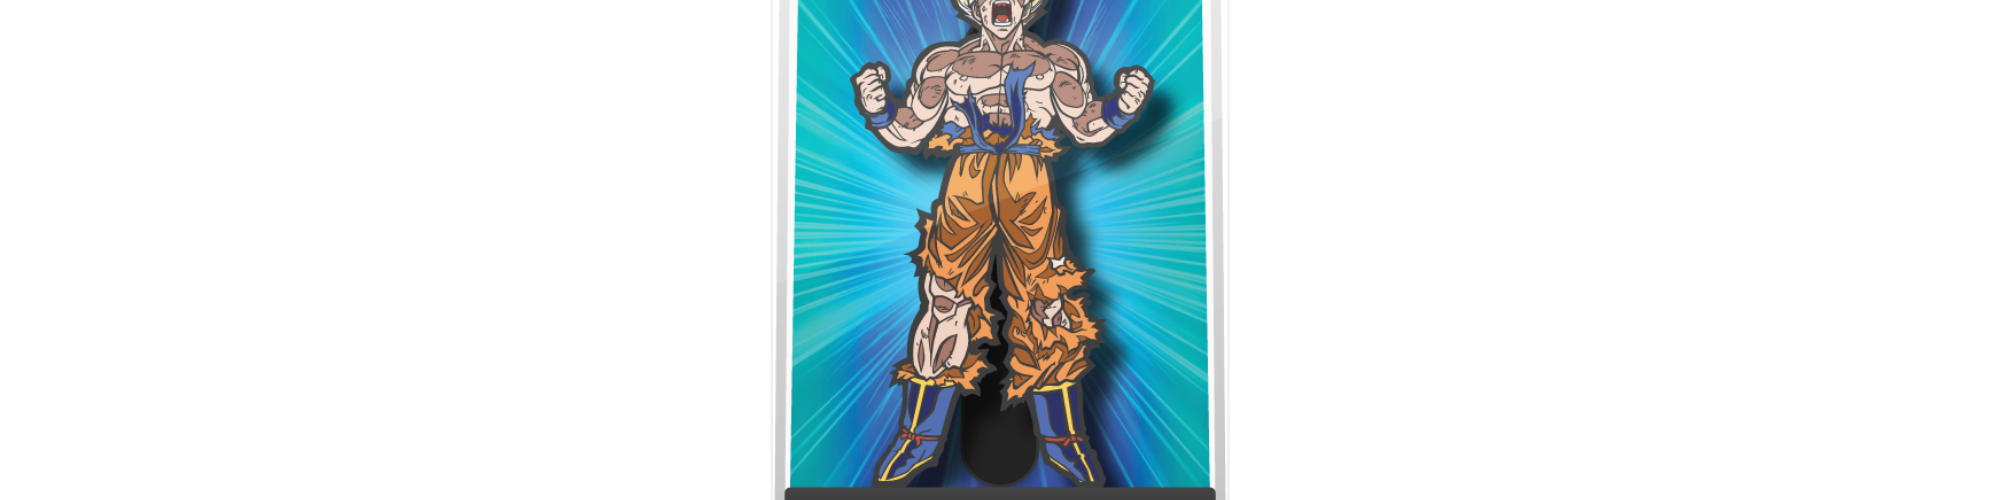 Super Saiyan Goku Enamel Pin, with display case, by FiGPiN